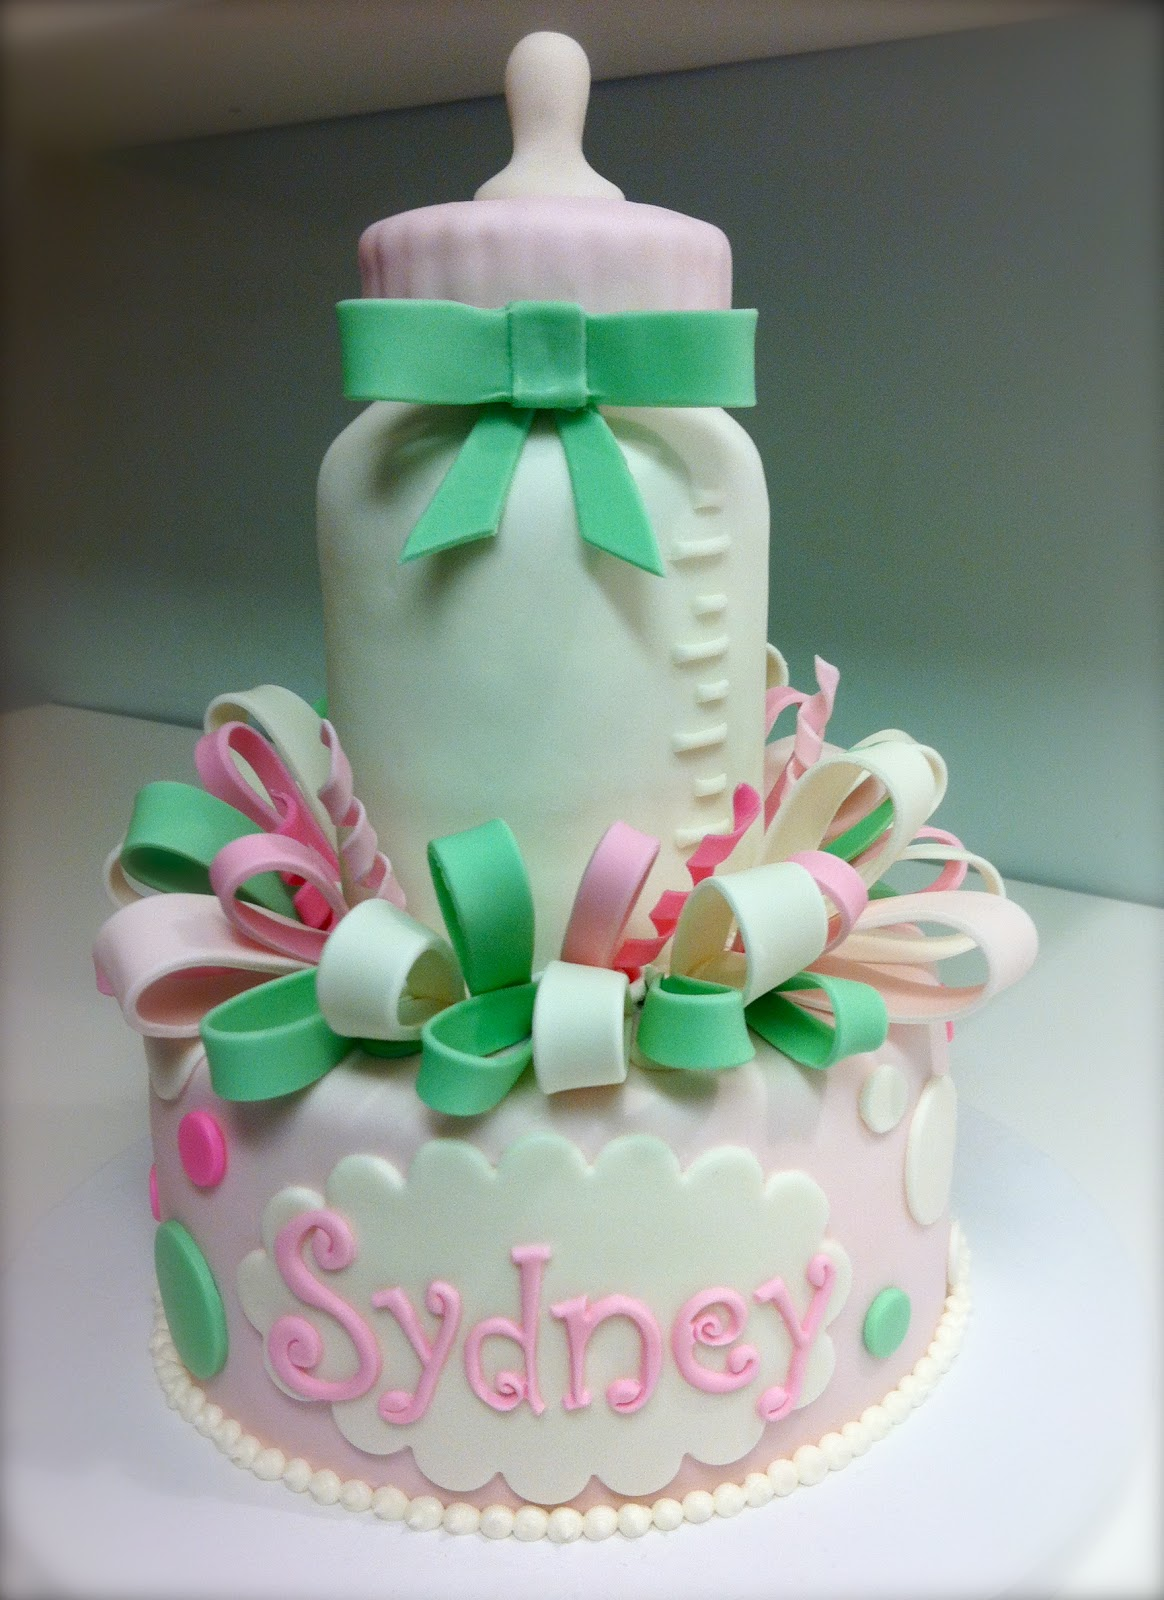 Baby Bottle Cake Images : MegMade Cakes: Baby Shower Cake for Sydney